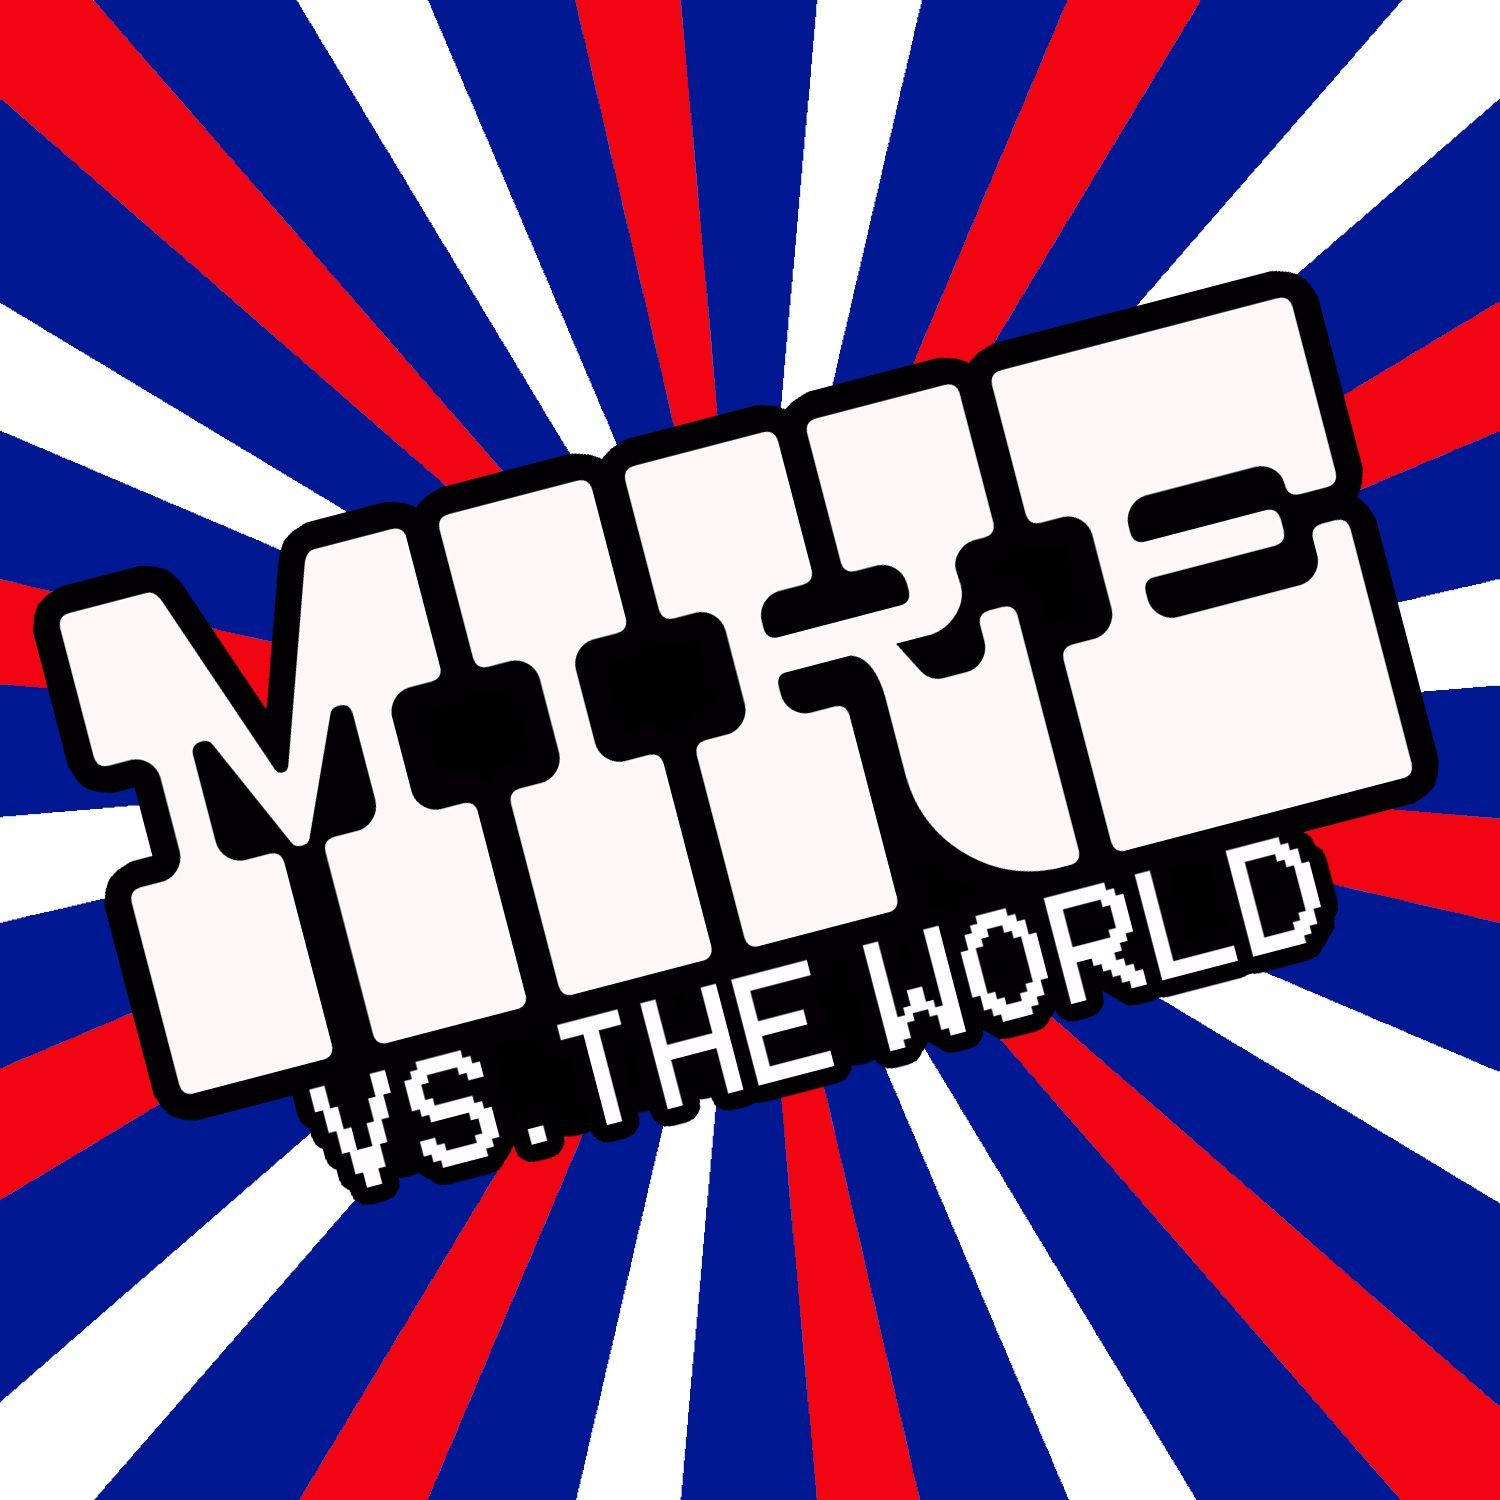 Mike vs. the World - Pop, Nerd, and Gaming Culture